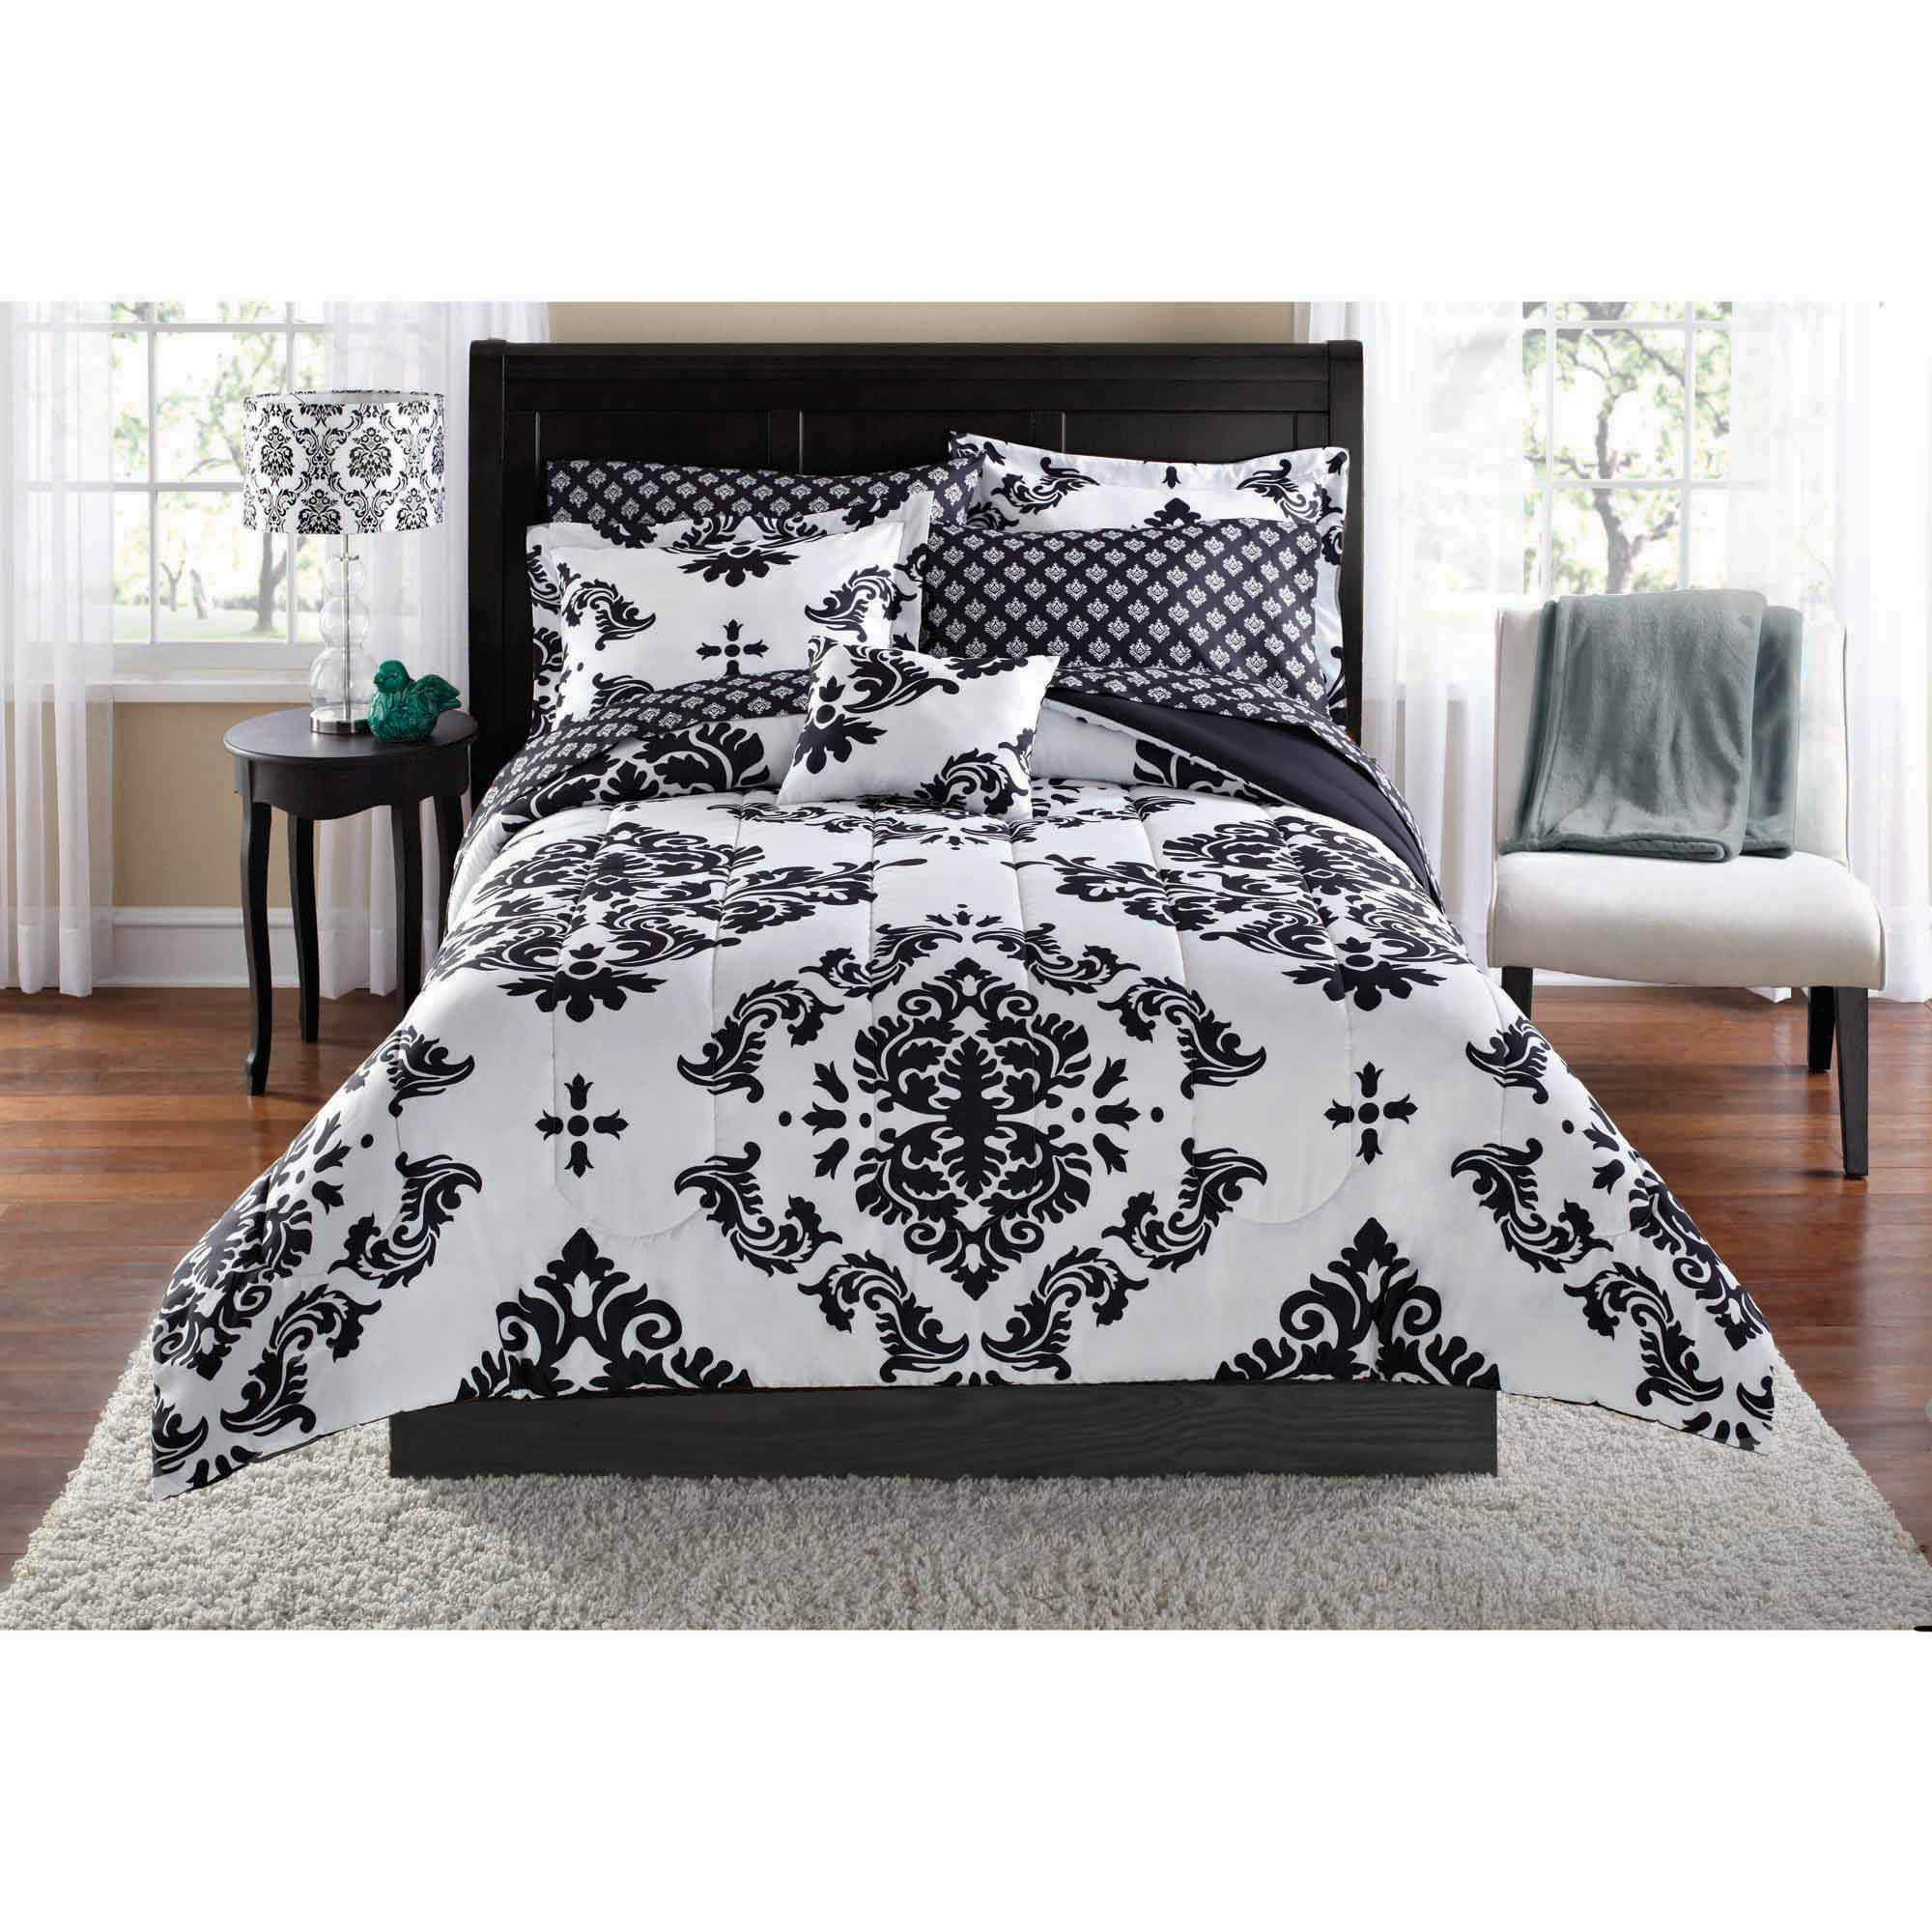 senbk bedding teen damask queen size full comforter senna quilt grey white twin xl set scroll p king dl black